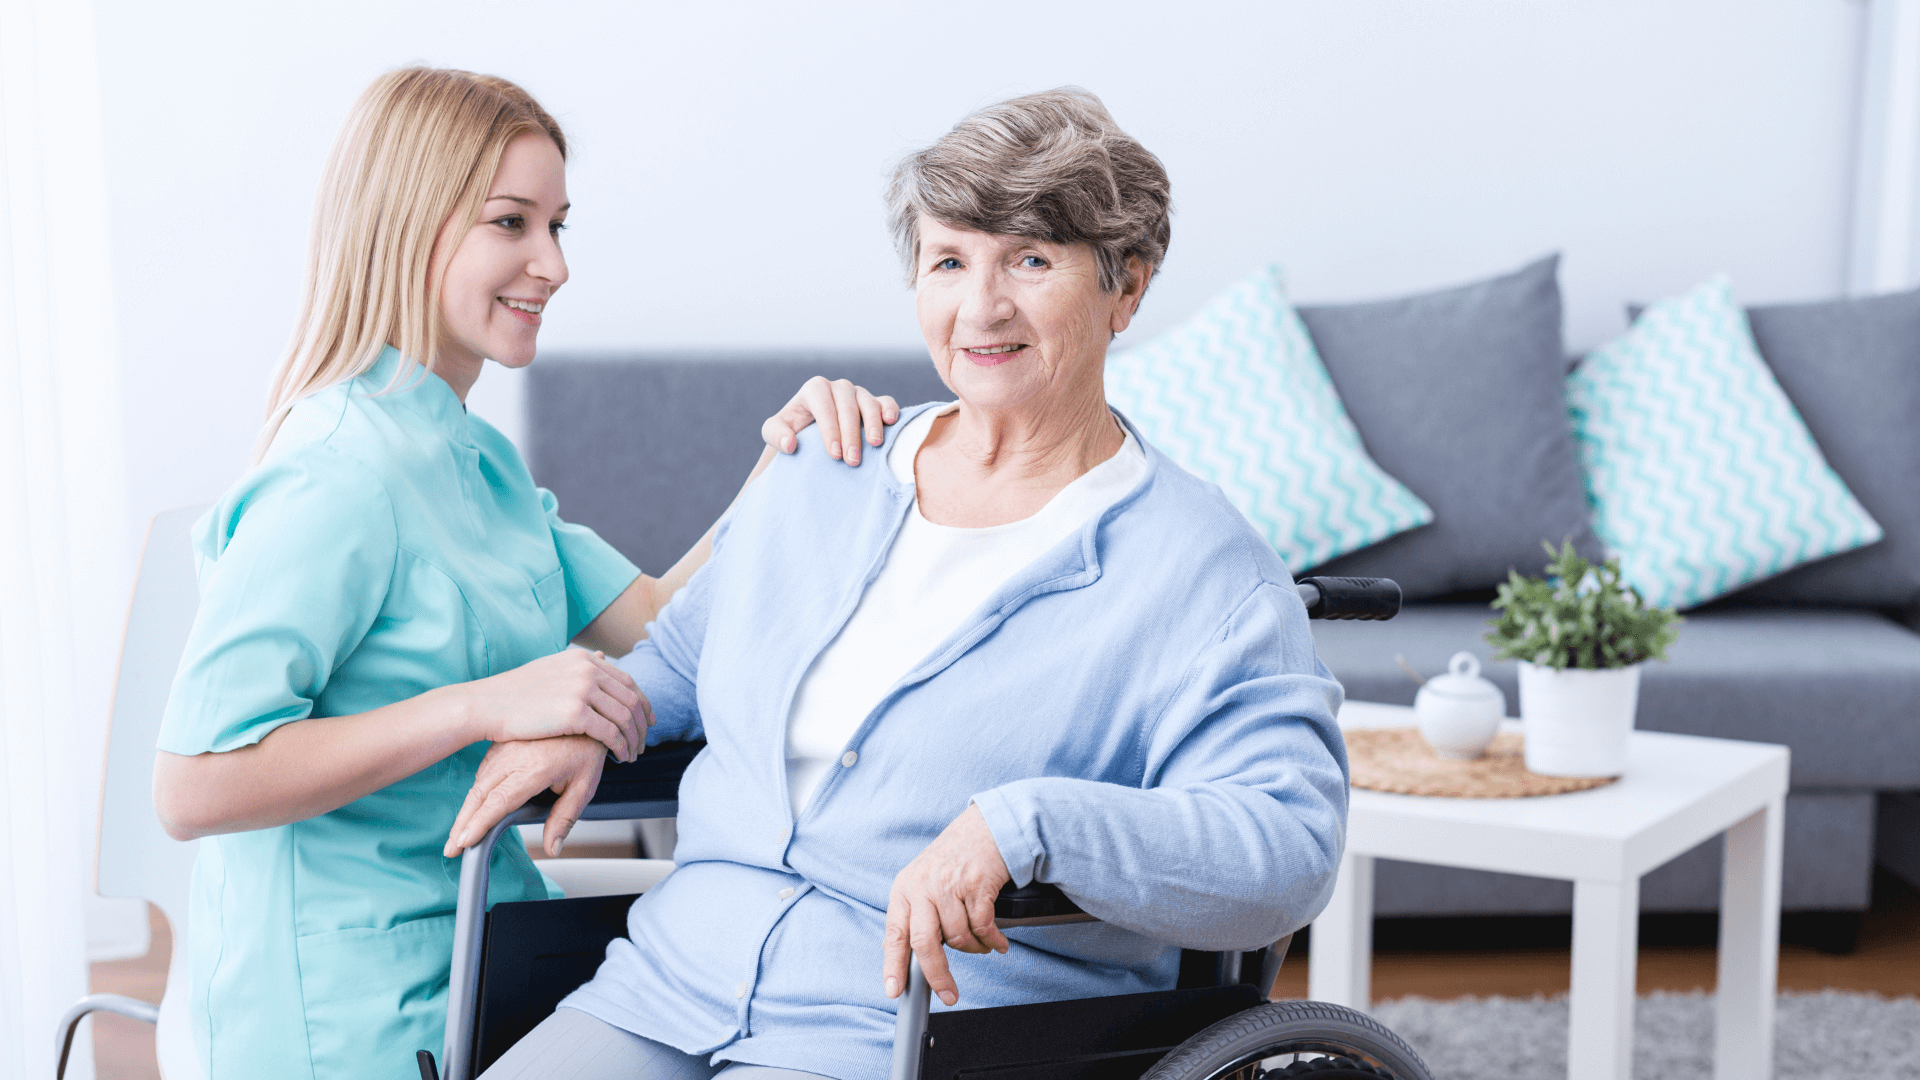 Physiotherapy specialist communicates with an elderly patient with disabilities